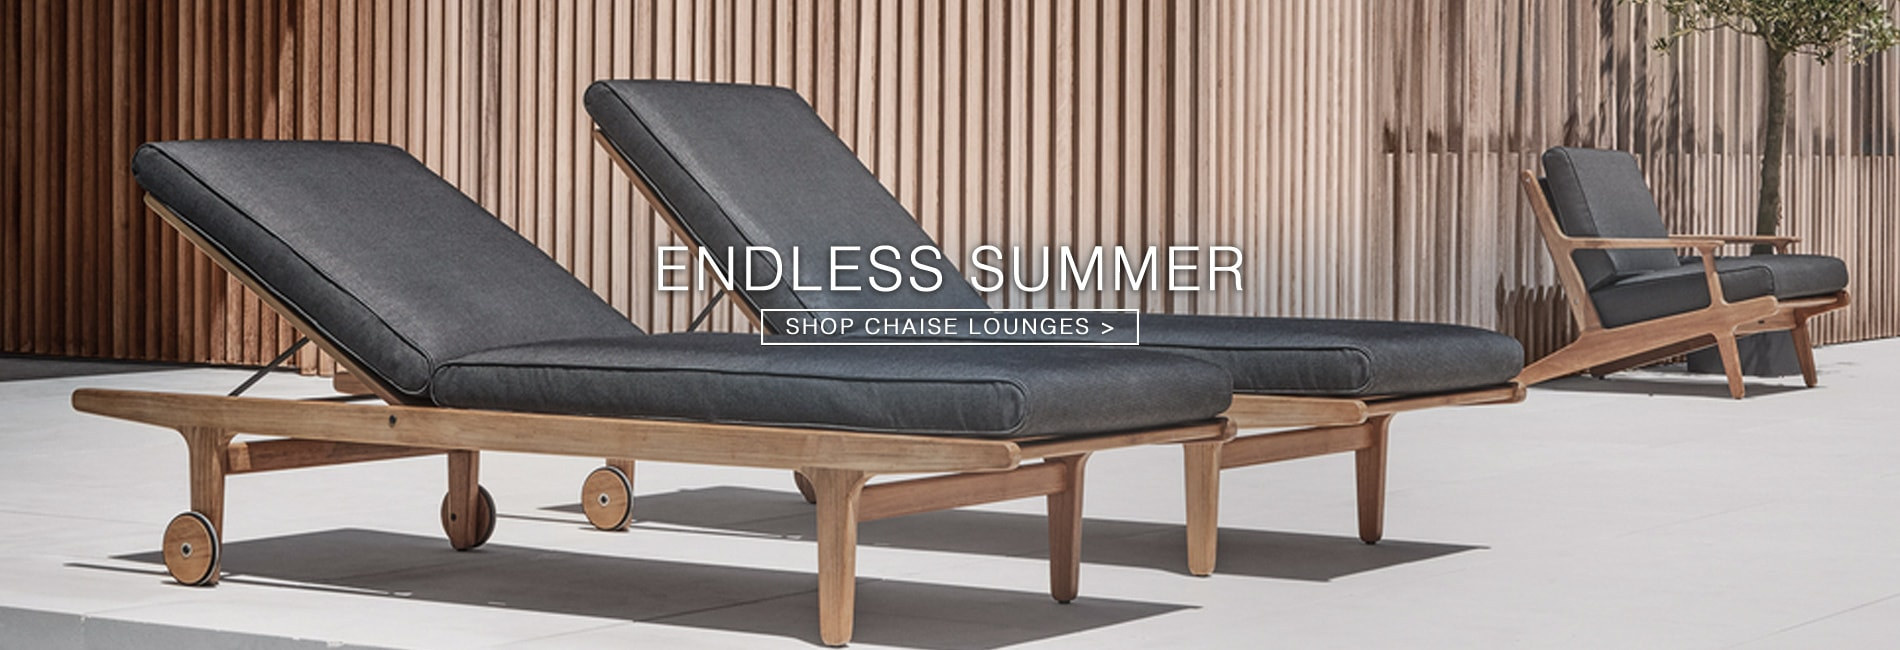 Shop Chaise Lounges